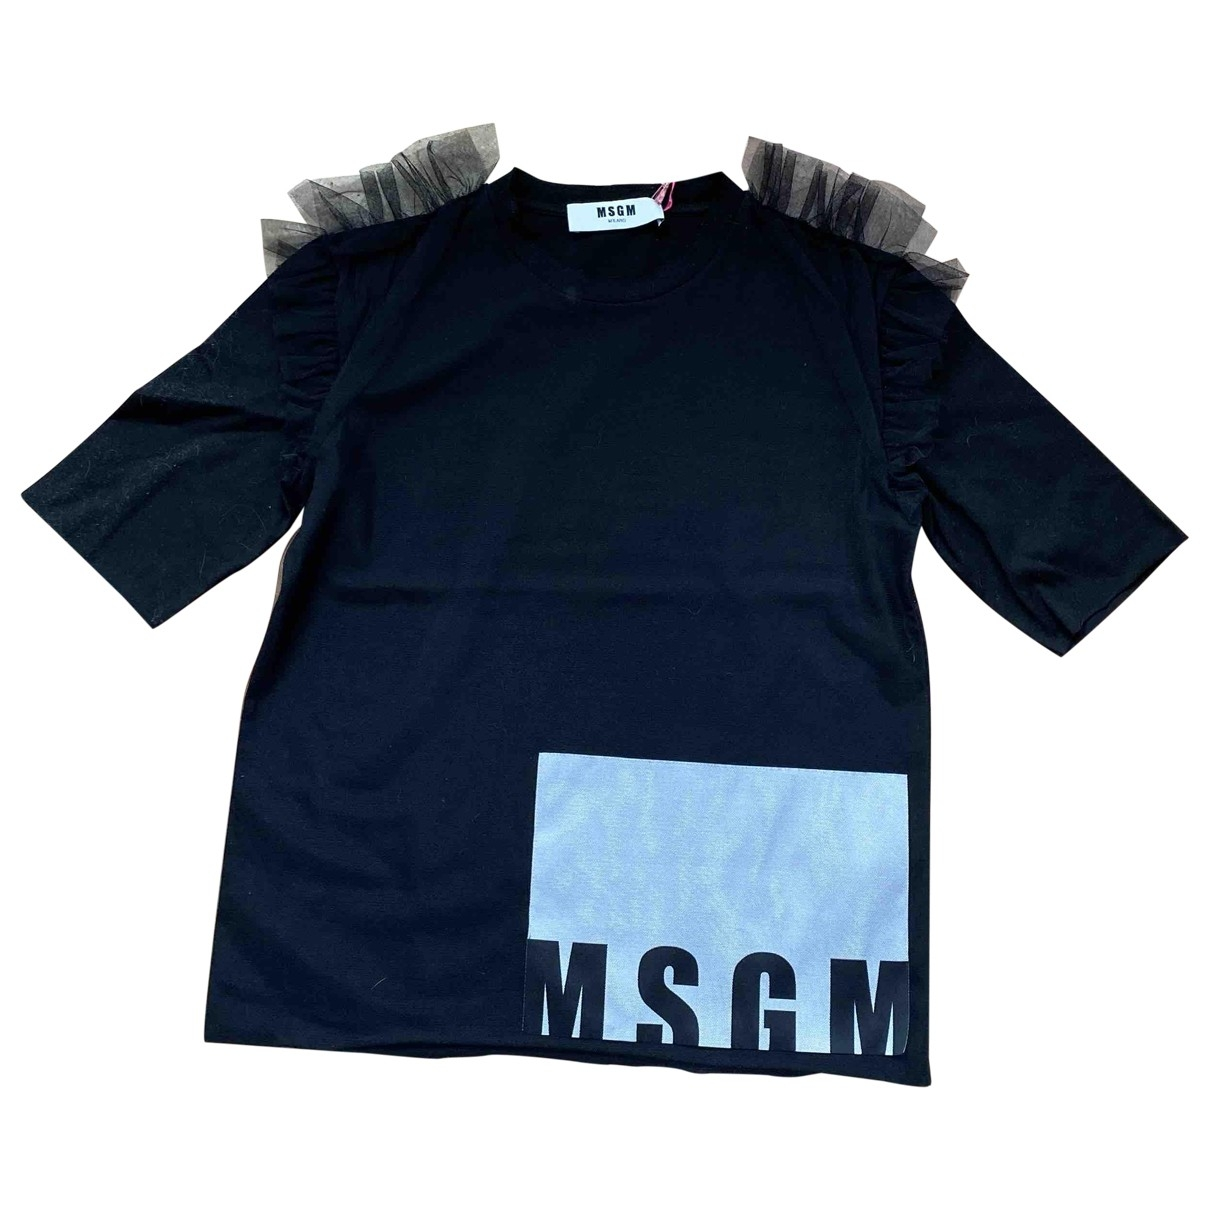 Msgm \N Black Cotton  top for Women S International